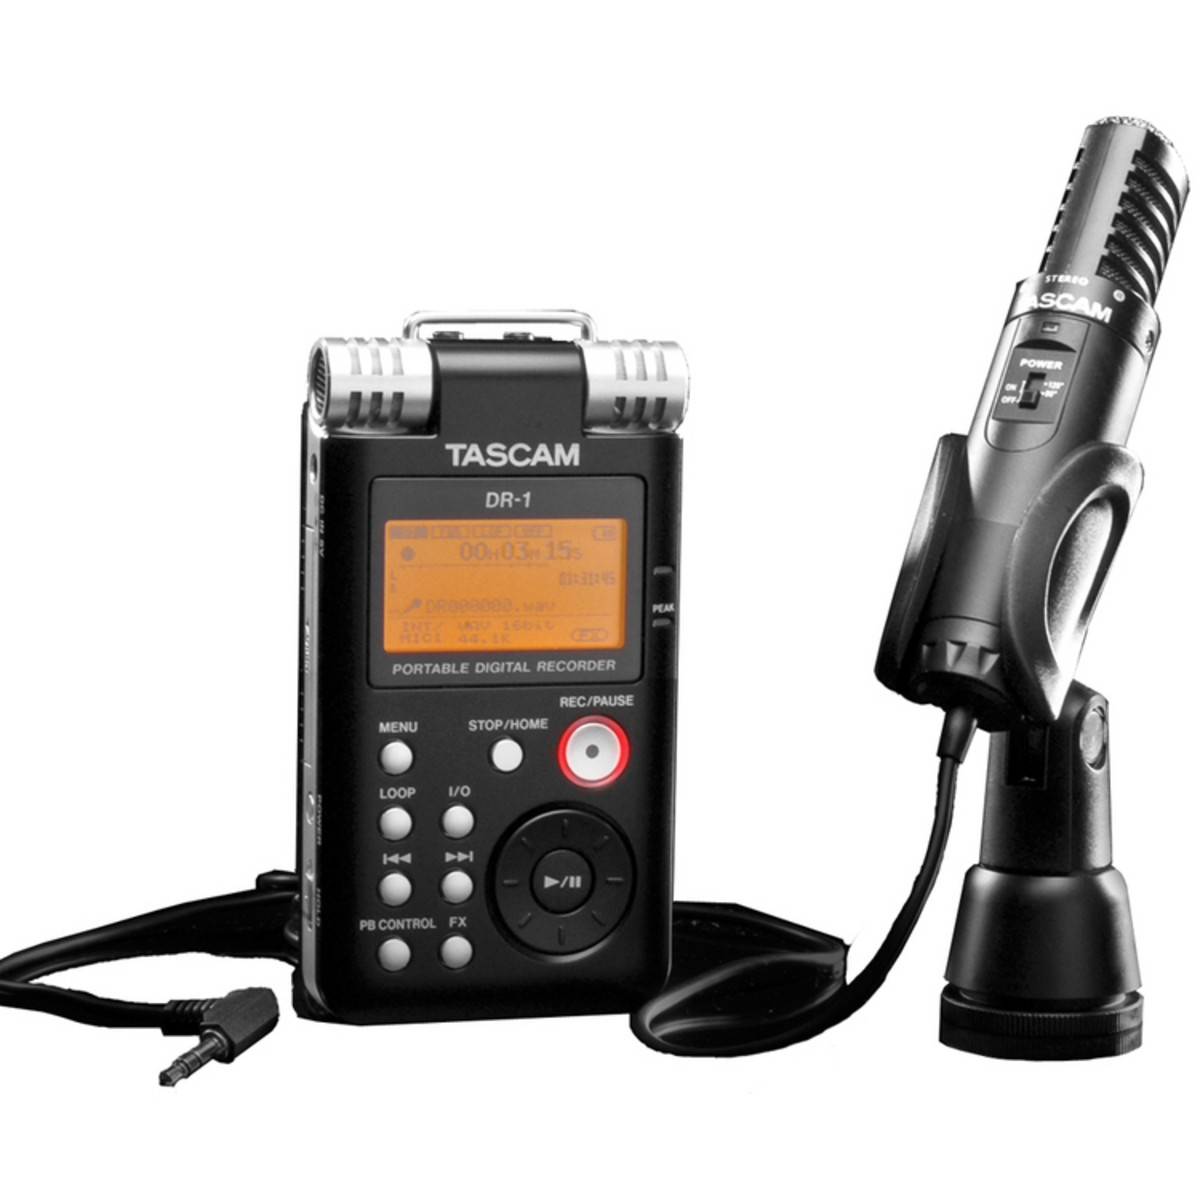 tascam dr1 portable field recorder field pack at gear4music. Black Bedroom Furniture Sets. Home Design Ideas